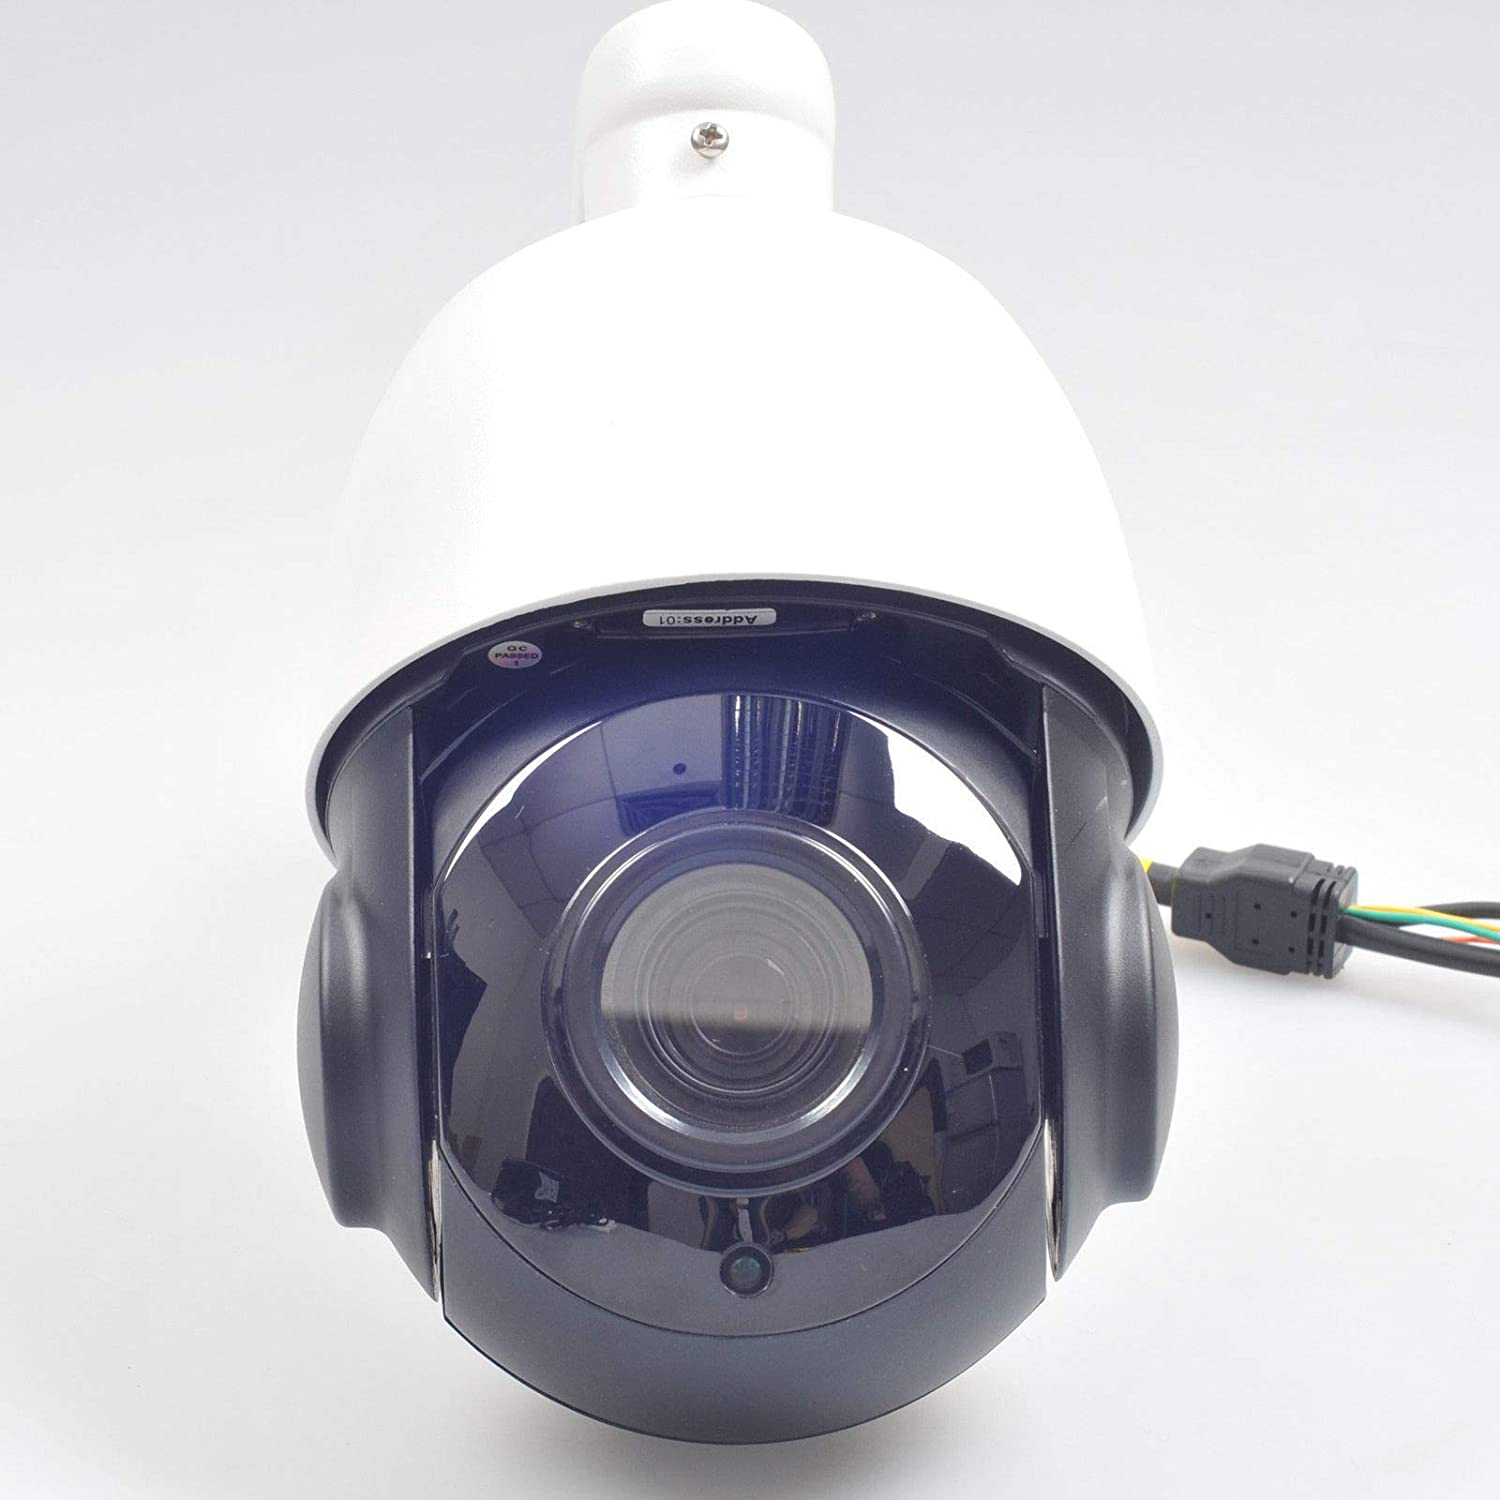 【お買い得!】 FidgetGear HD 1080P CCTV IP Camera 18X Optical Zoom Security PTZ Speed Dome IR 50M Outdoor   B07QB1KVW2, apm24 34cd49bd